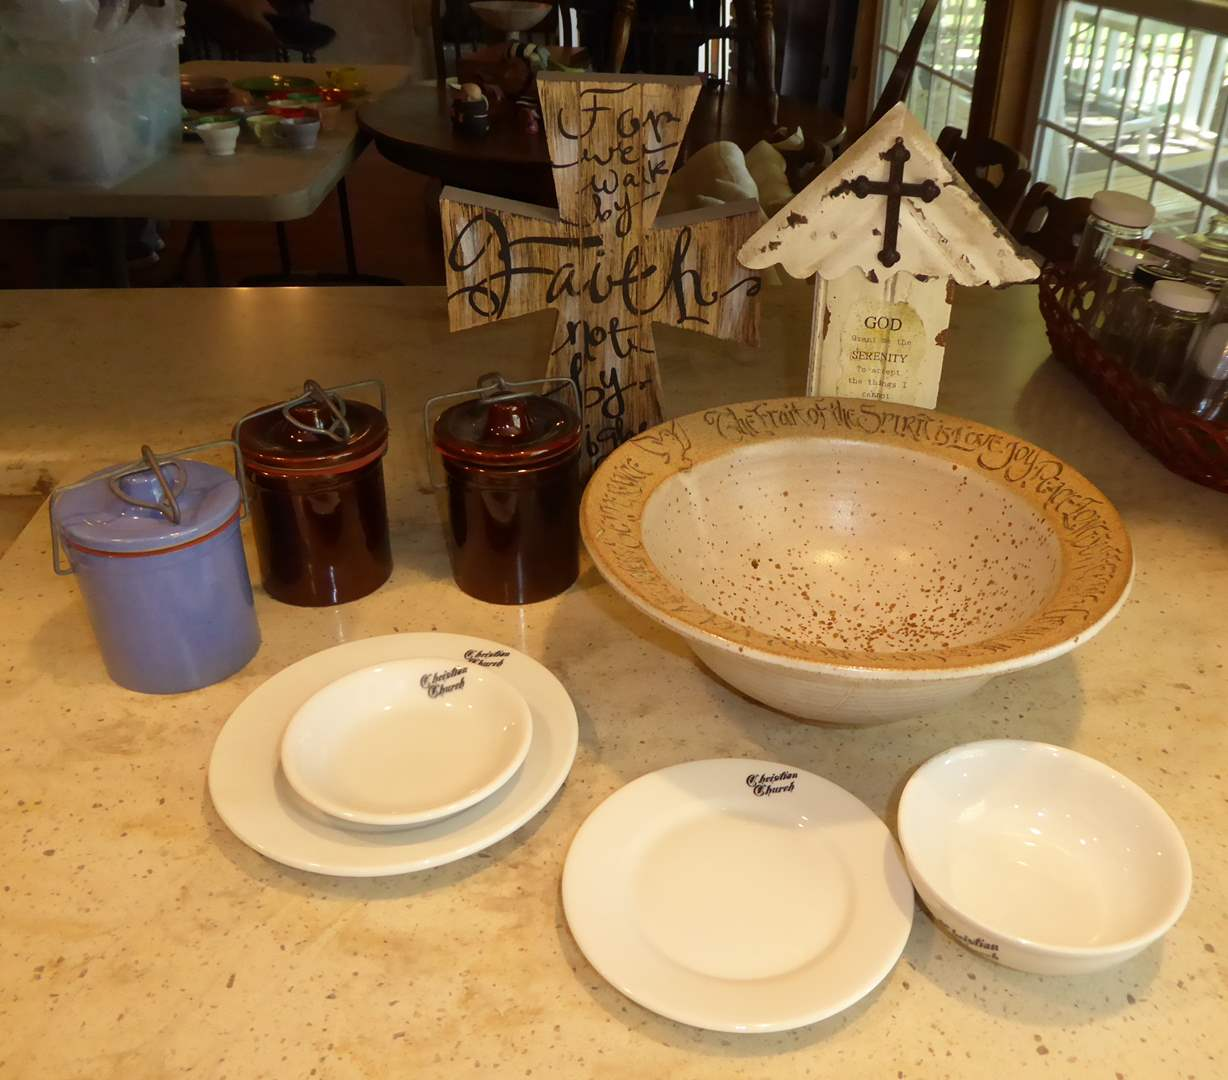 Lot # 17 - Vintage Christian Church Restaurant Ware & Fruits Of The Spirit Bowl  (main image)